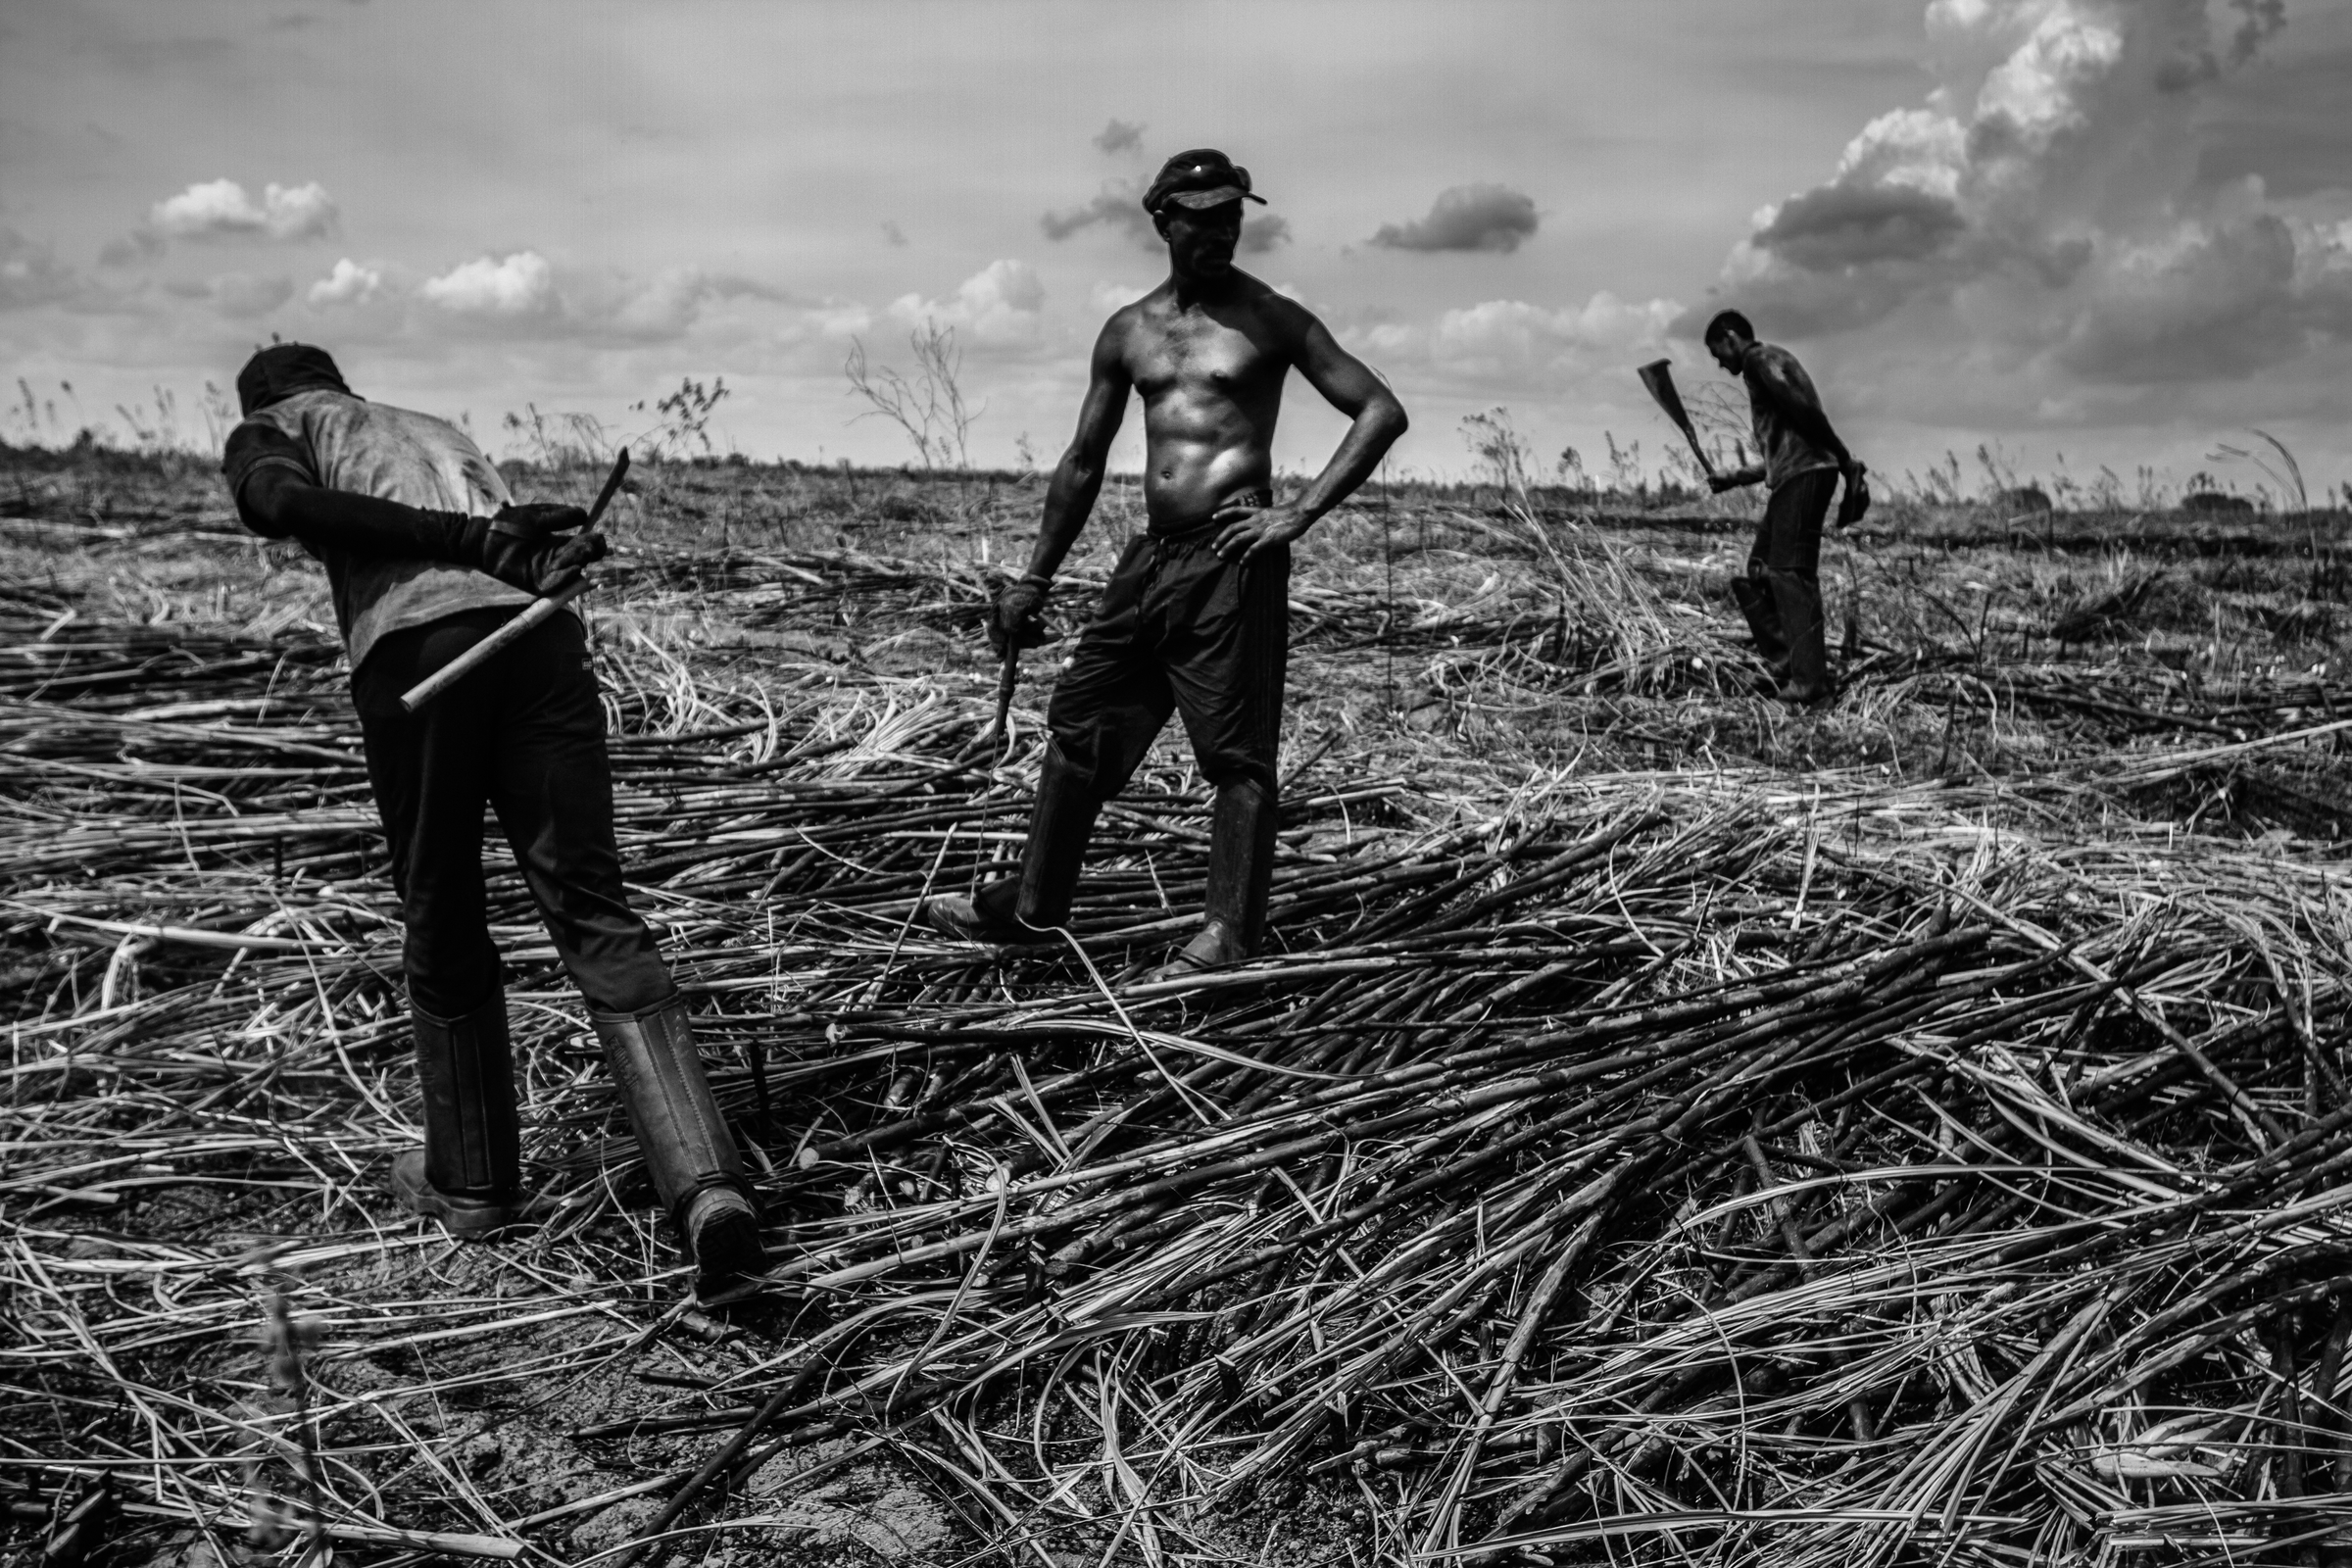 The cane cutters of Brazil